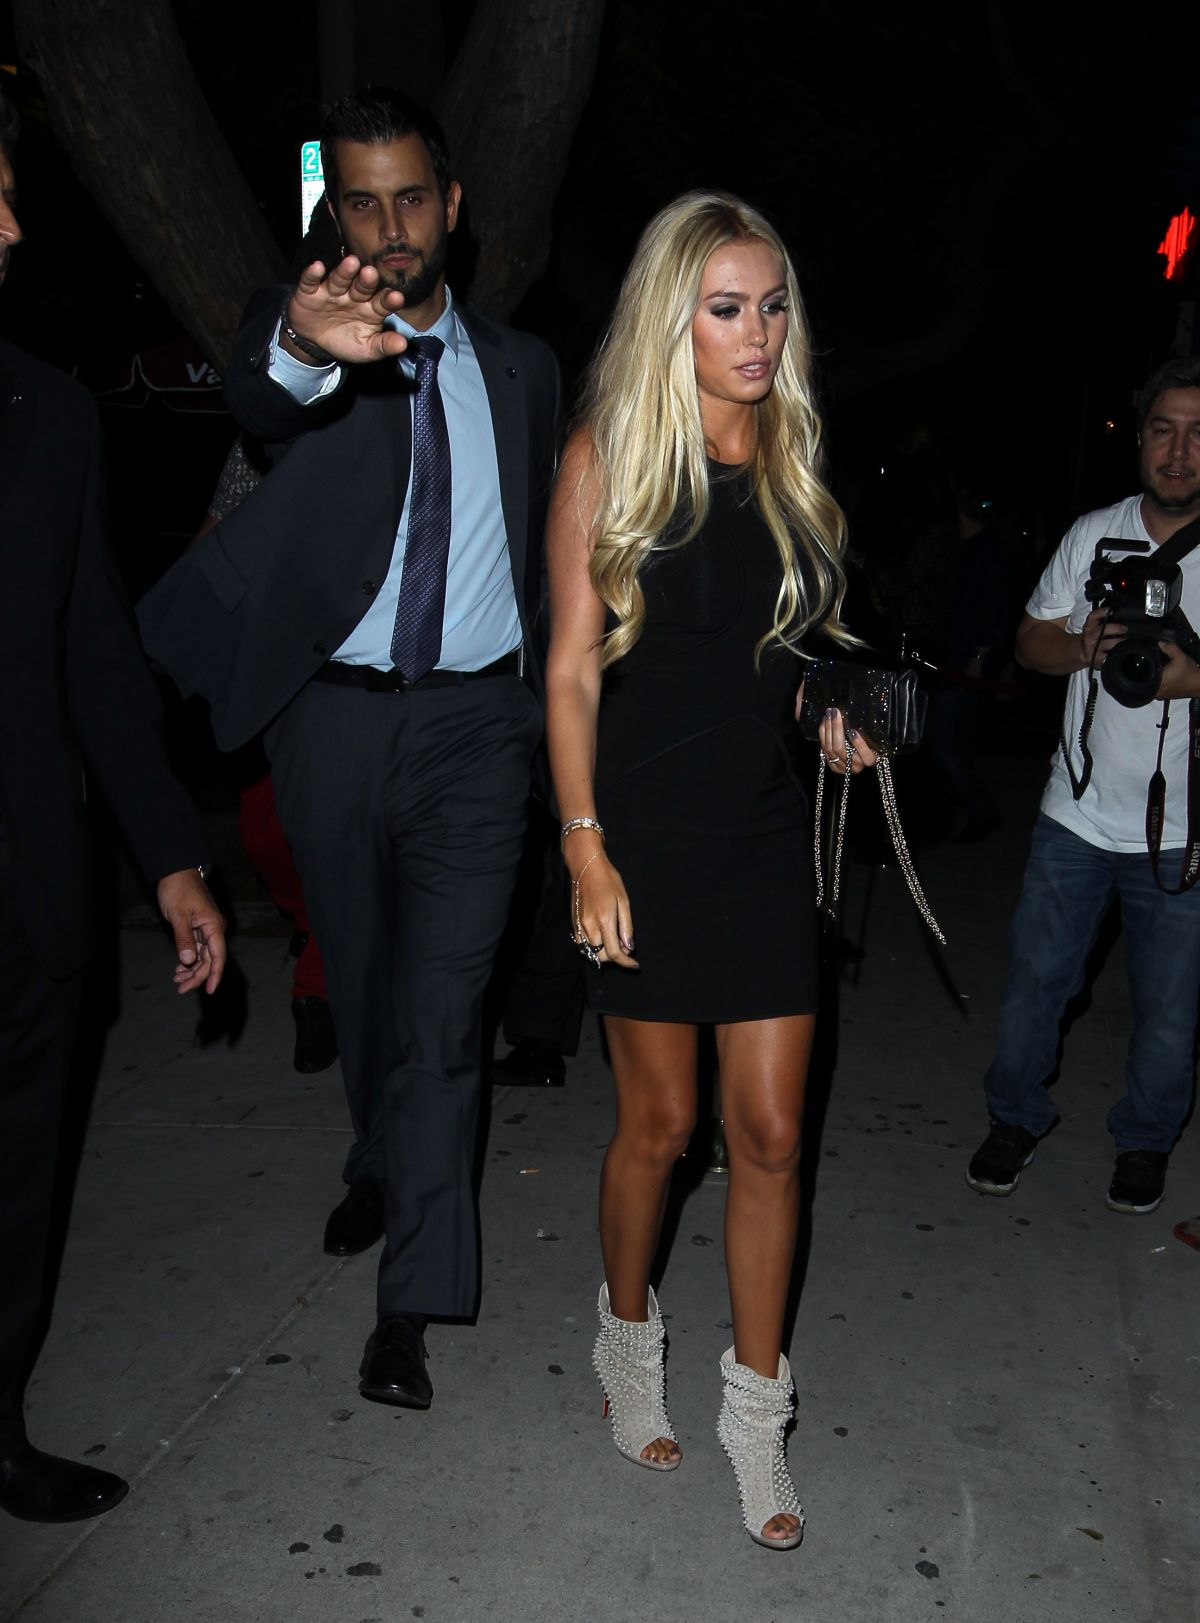 Petra Ecclestone Seen For A Night Out At Hooray Henry